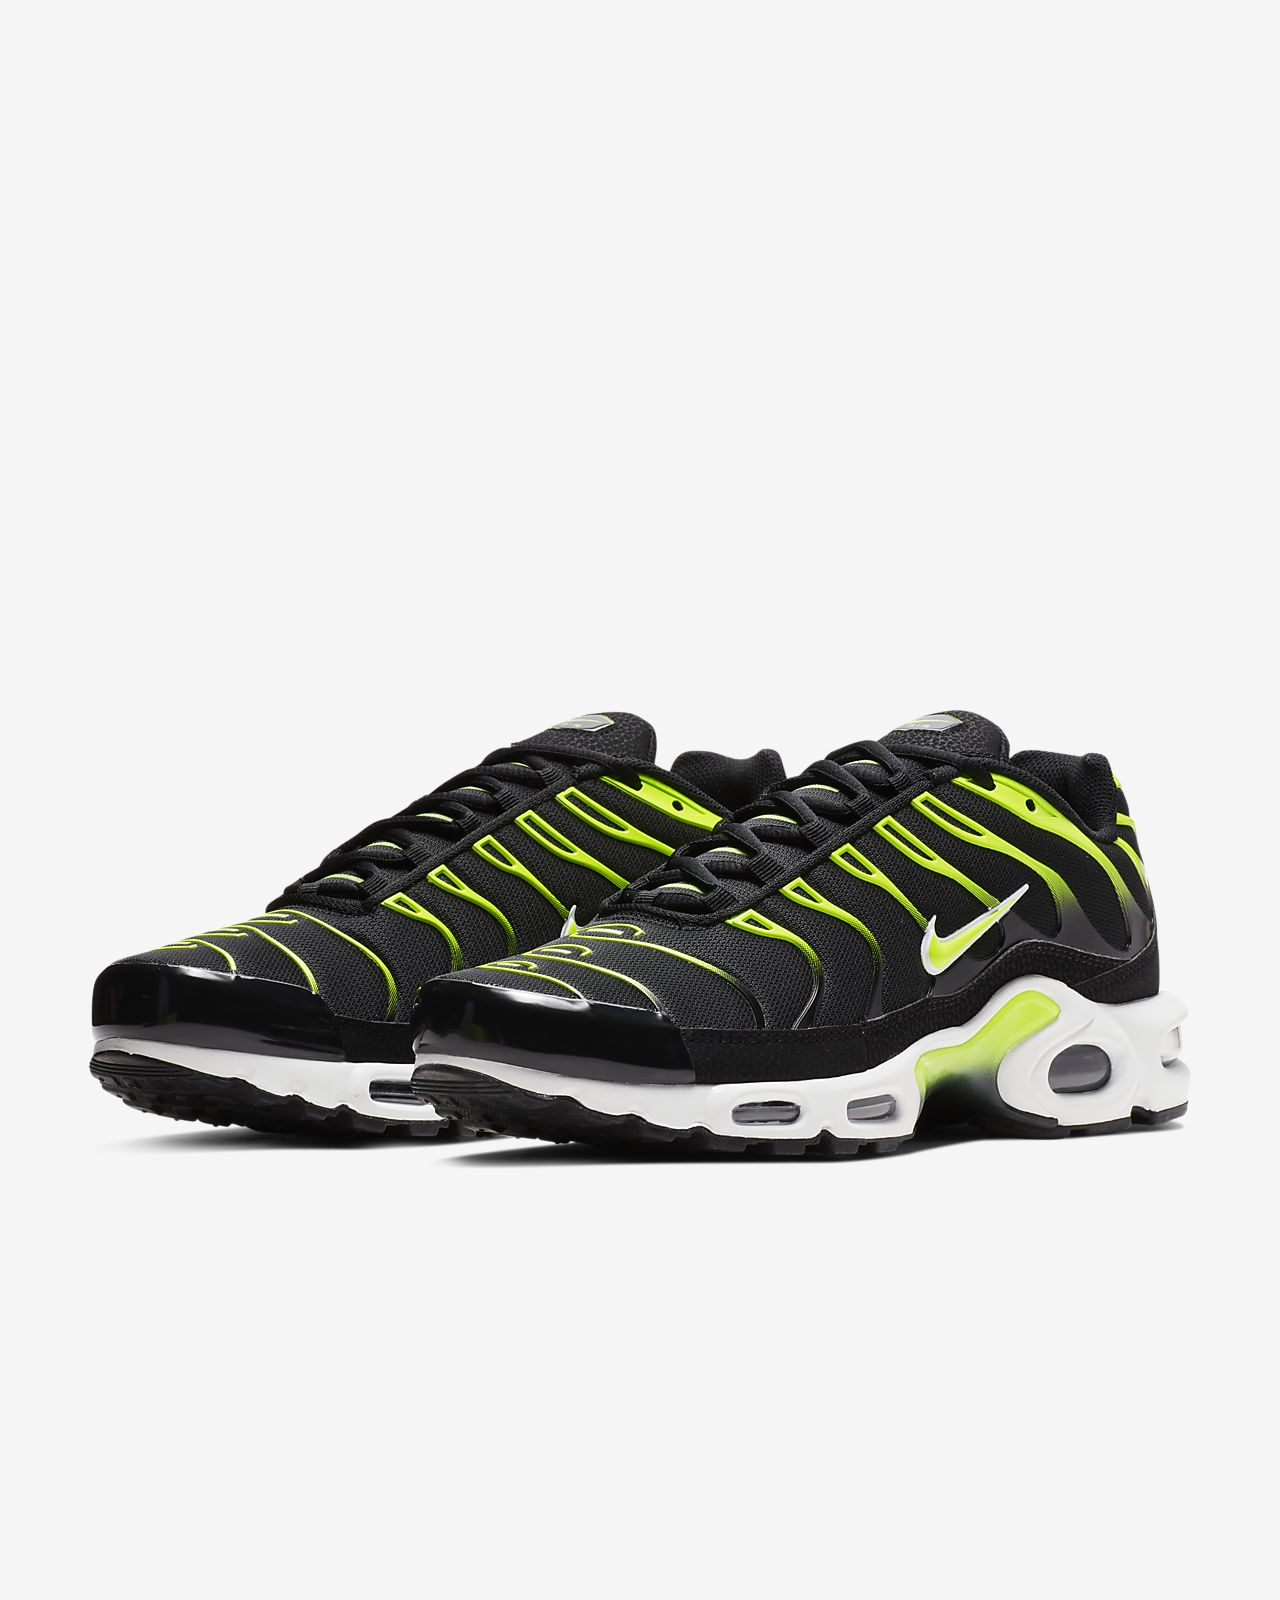 detailed look 01128 804dd ... Nike Air Max Plus Men s Shoe